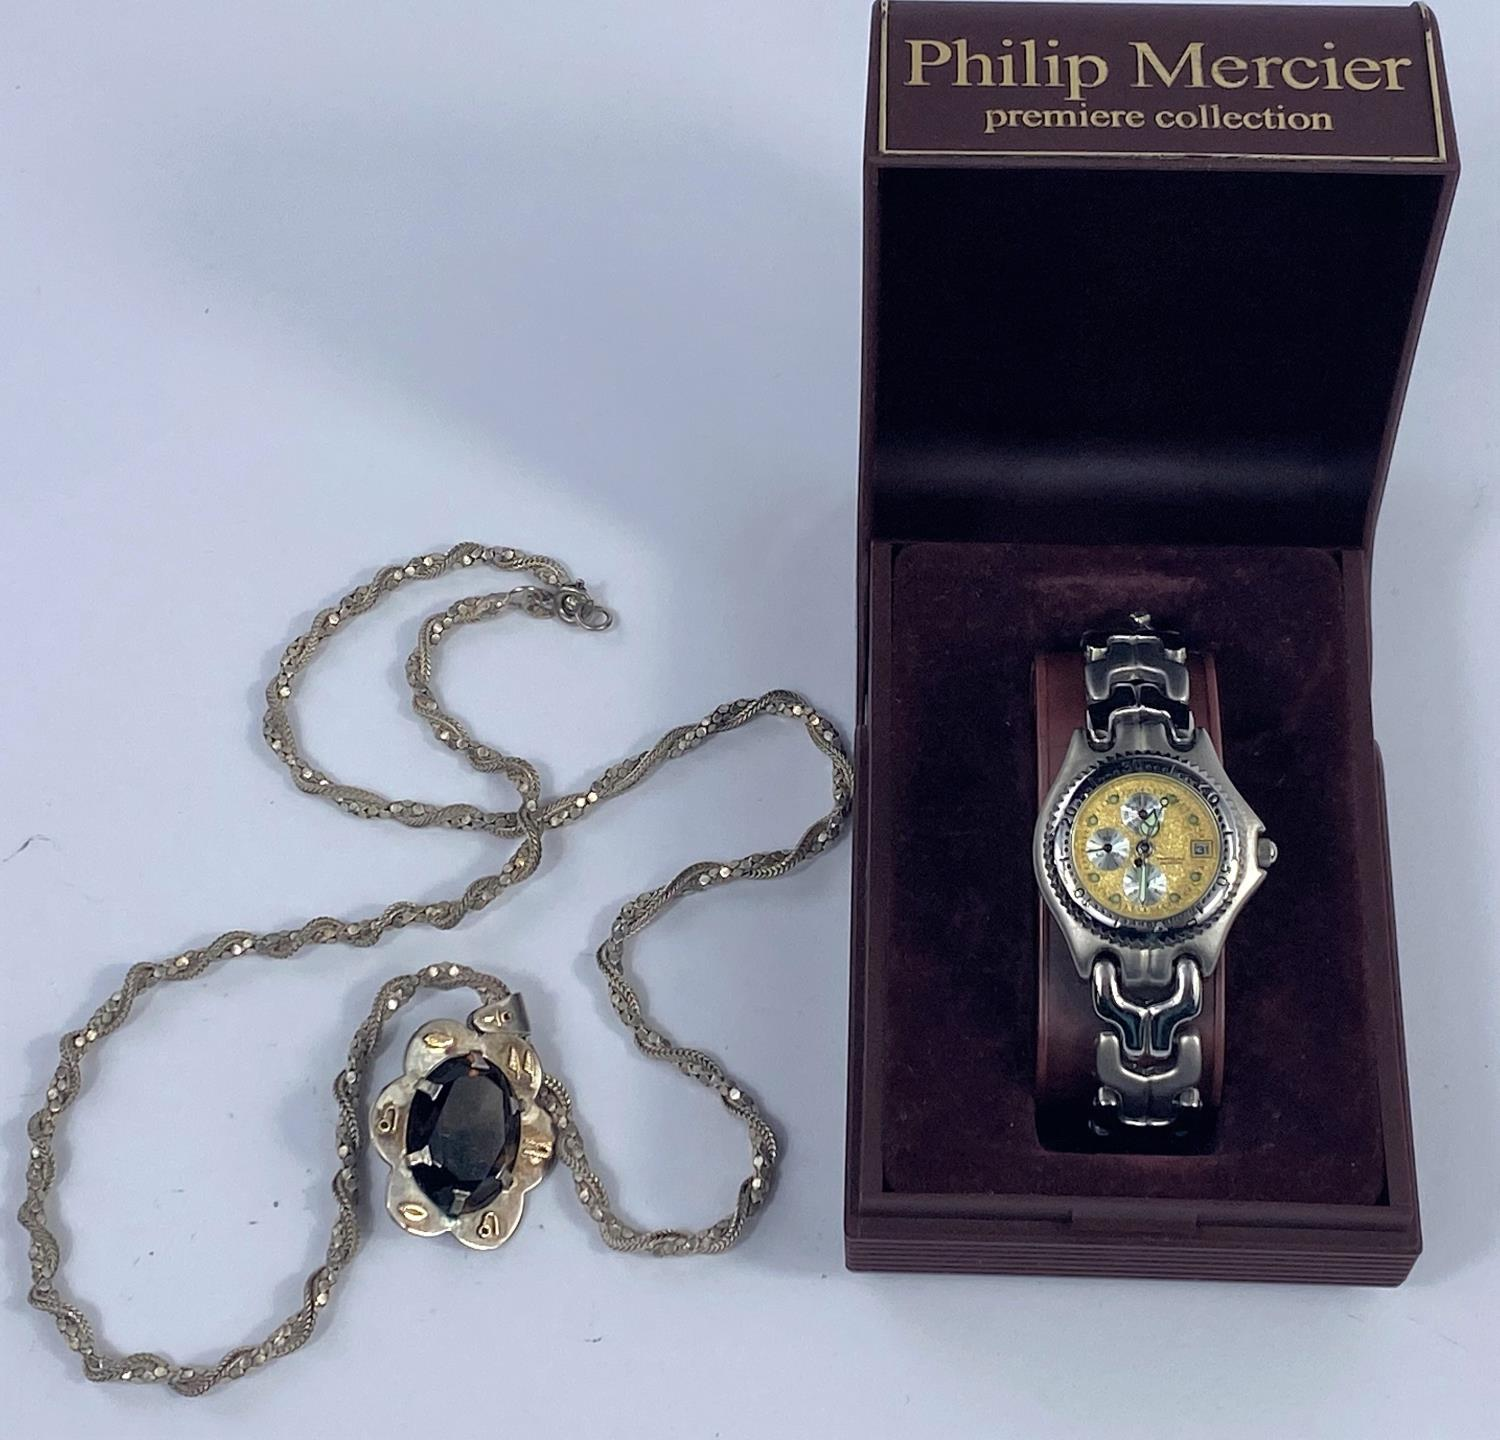 A lady's stainless steel wristwatch with a gilt face & 3 secondary dials; a smoky quarts pendant